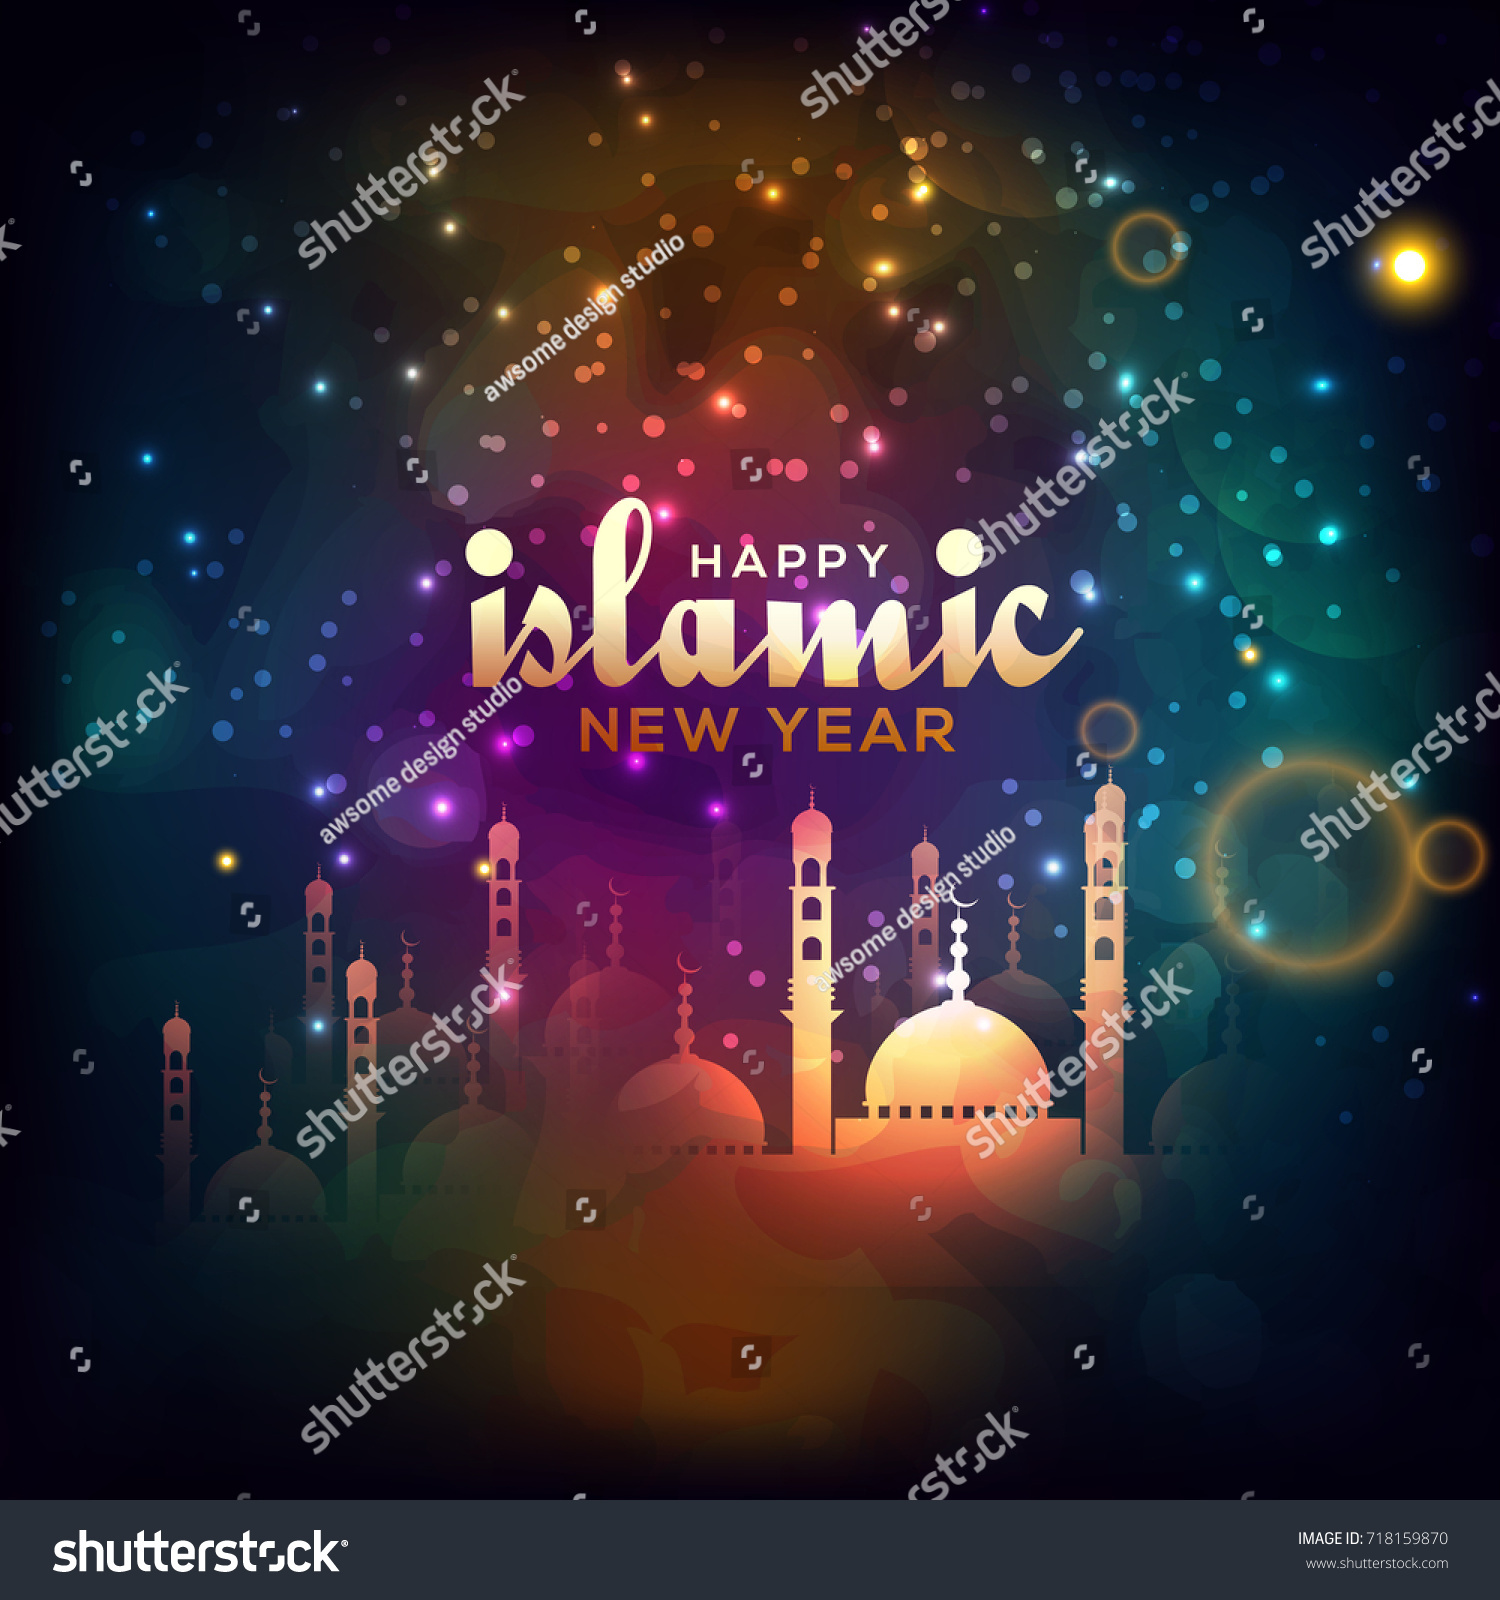 Illustrationgreeting Card For Islamic New Year Ez Canvas